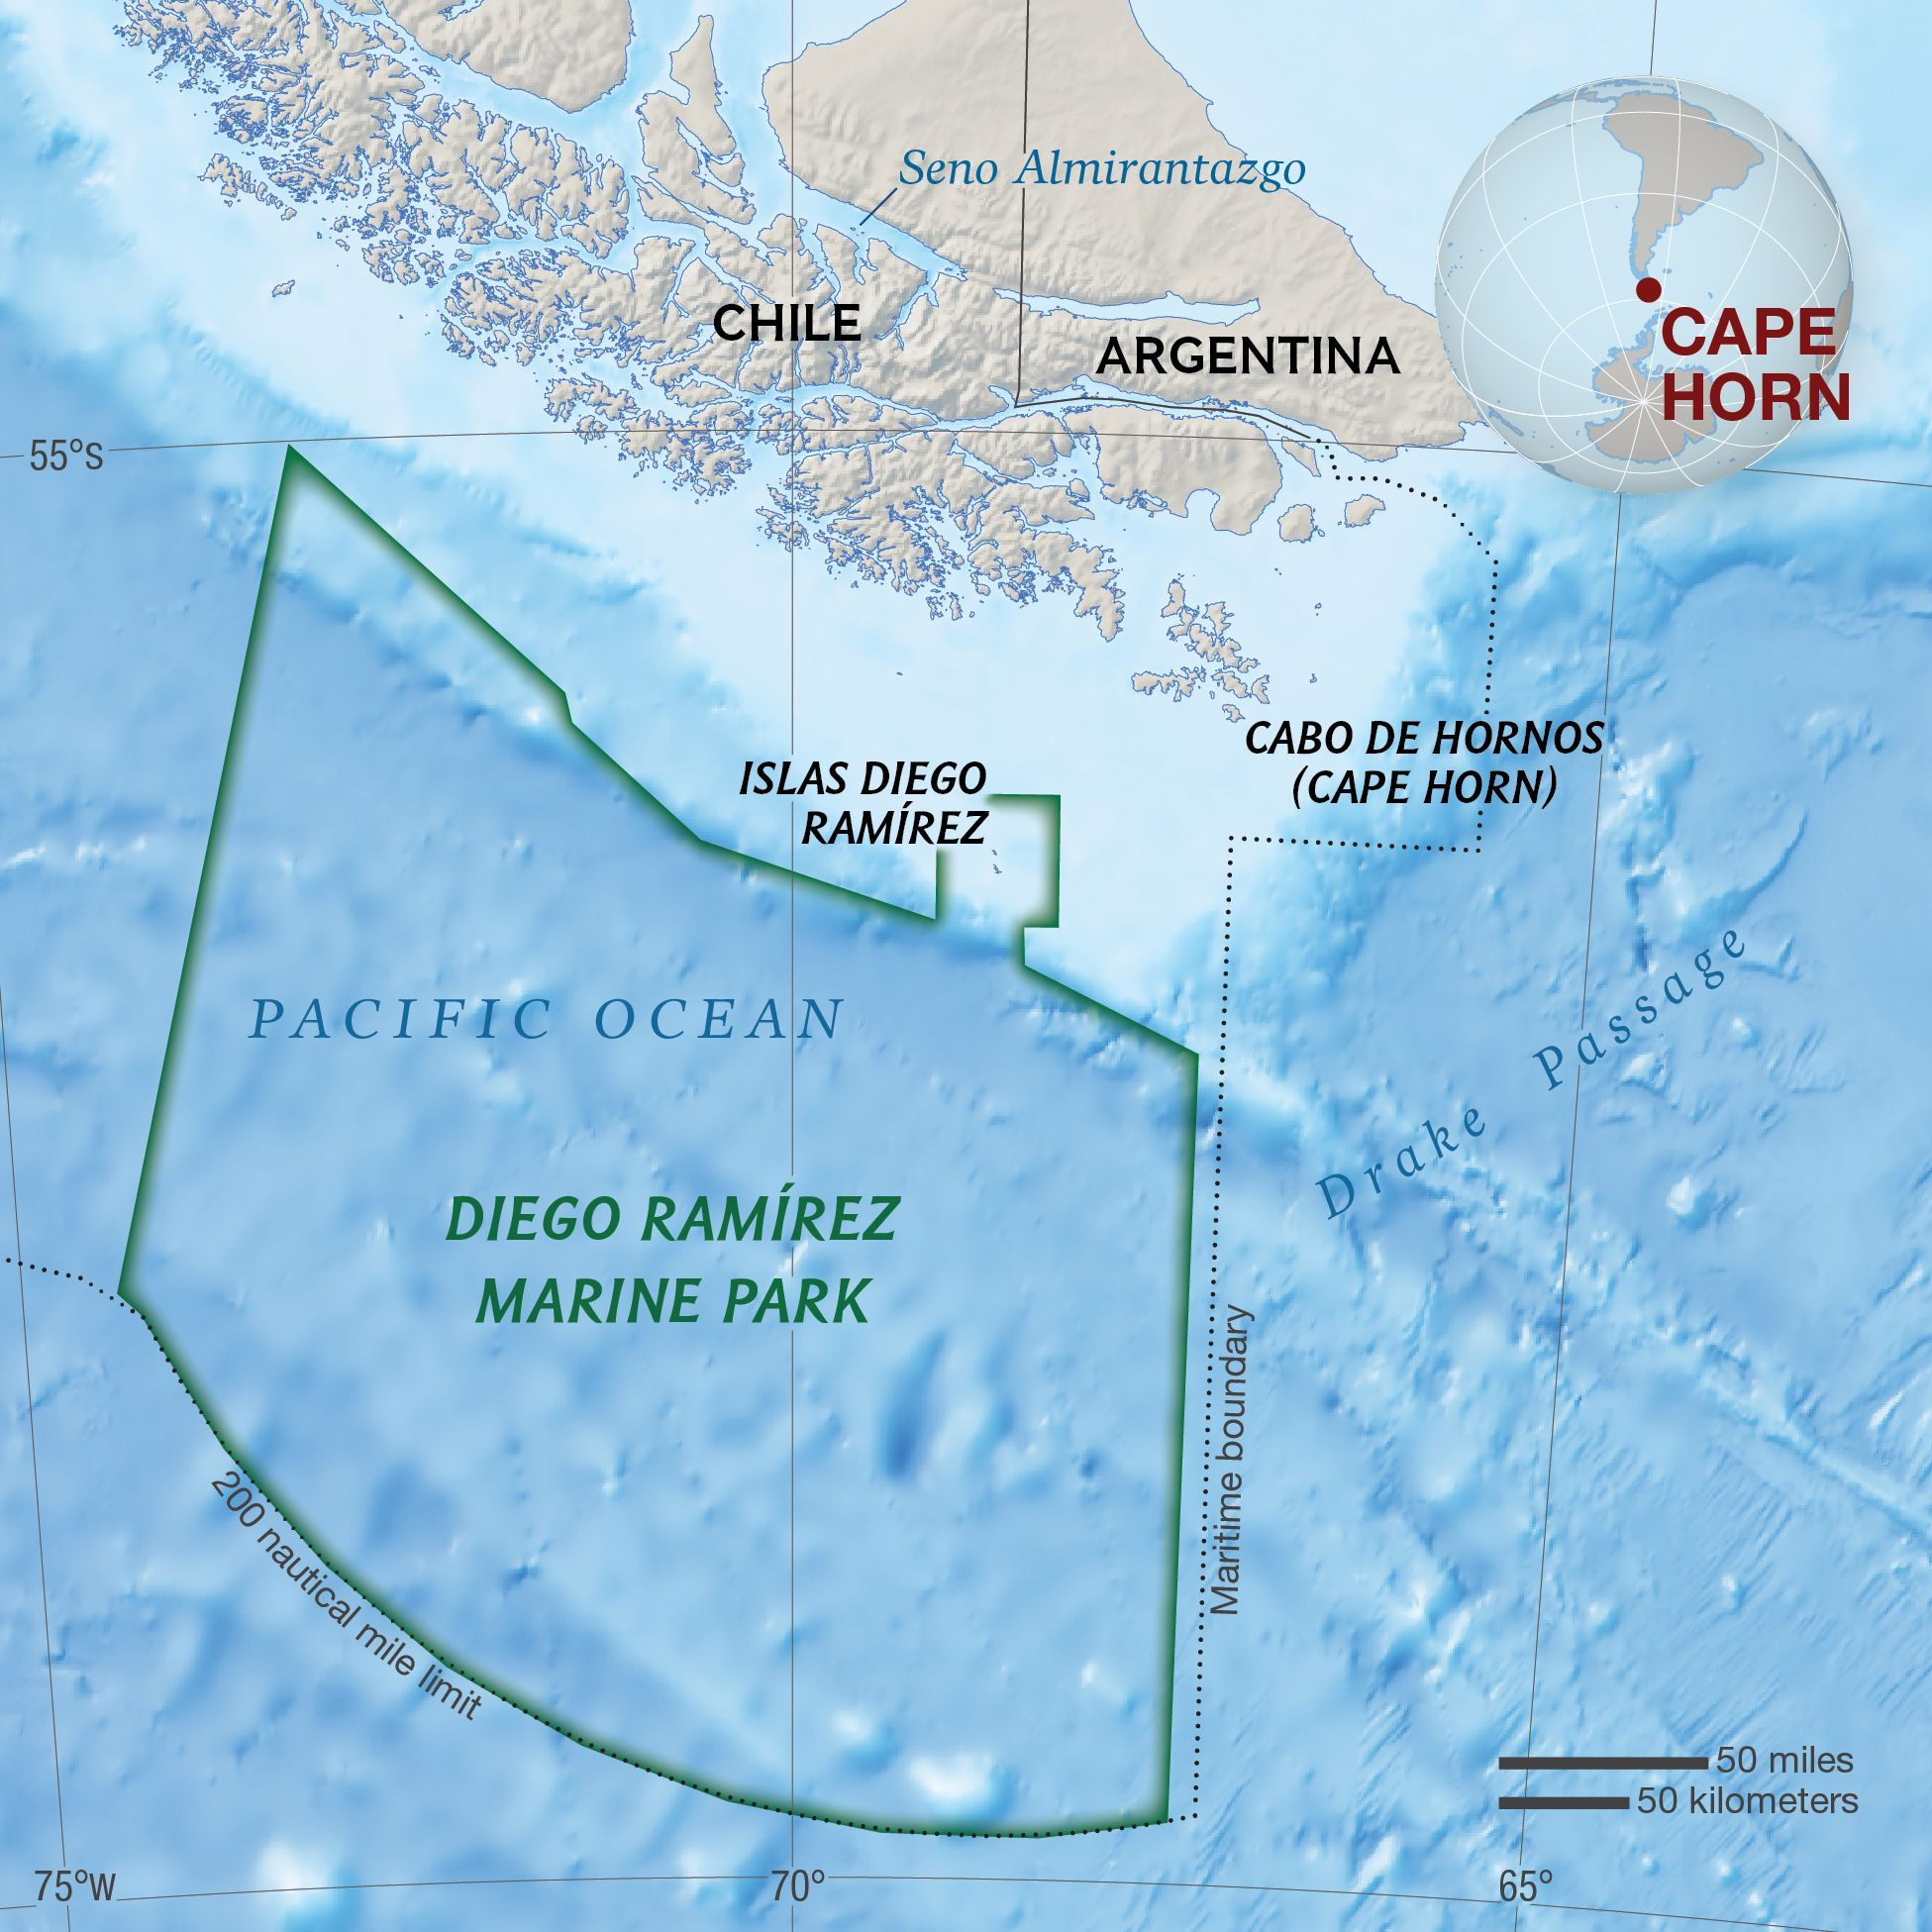 Capo Horn Cartina.Cape Horn National Geographic Society